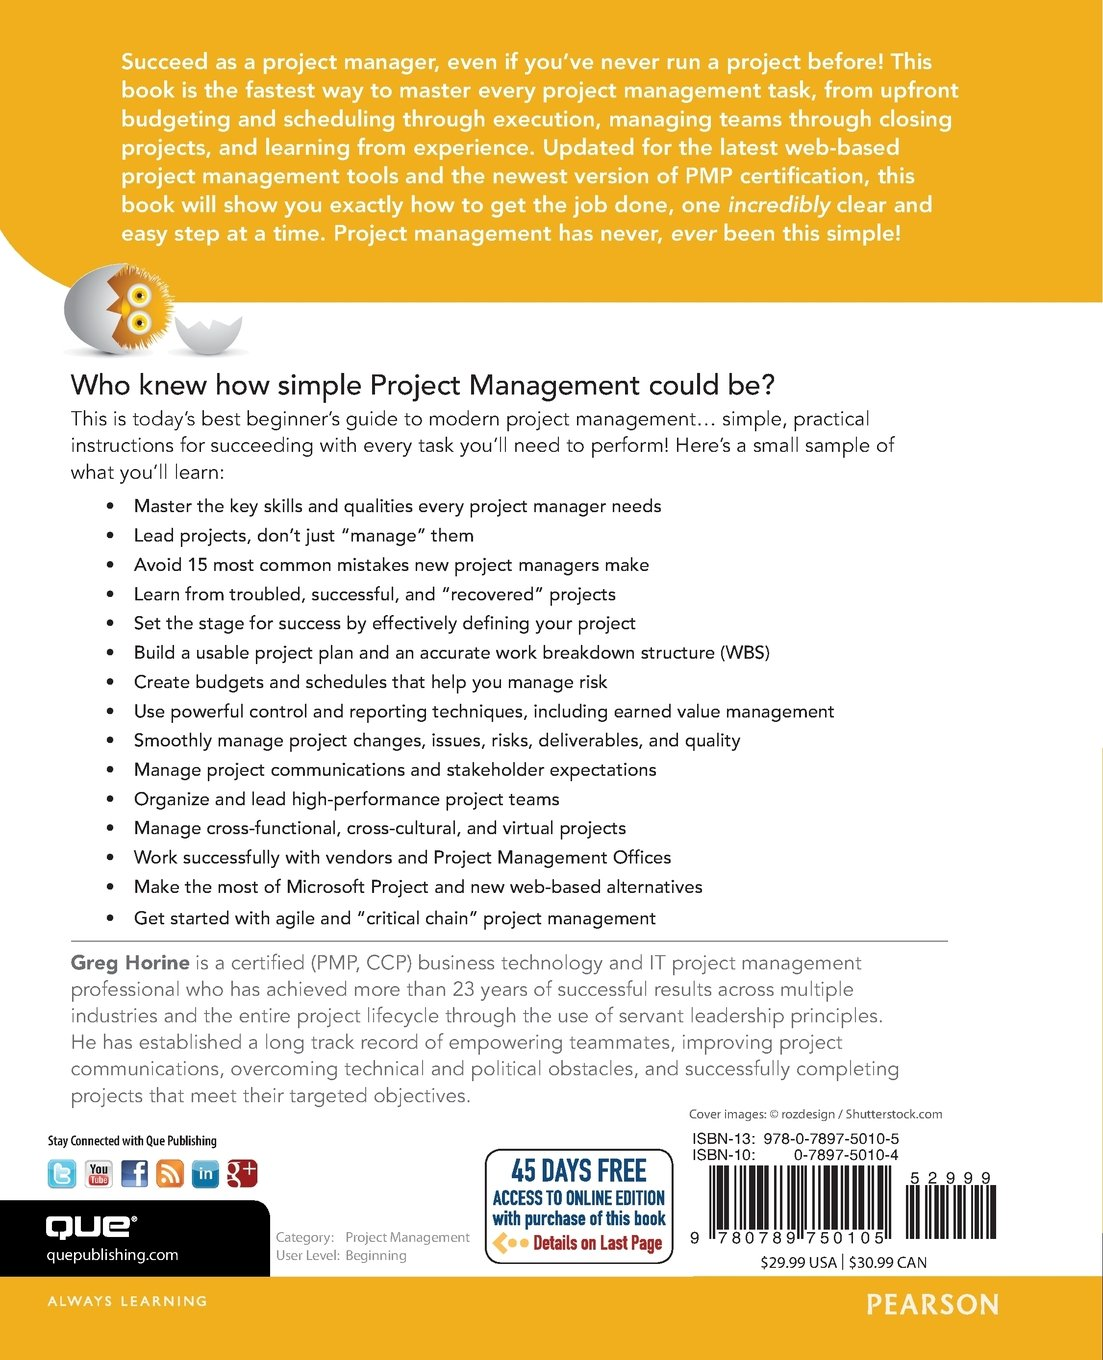 Amazon project management absolute beginners guide 3rd amazon project management absolute beginners guide 3rd edition 0029236750107 greg horine books xflitez Choice Image